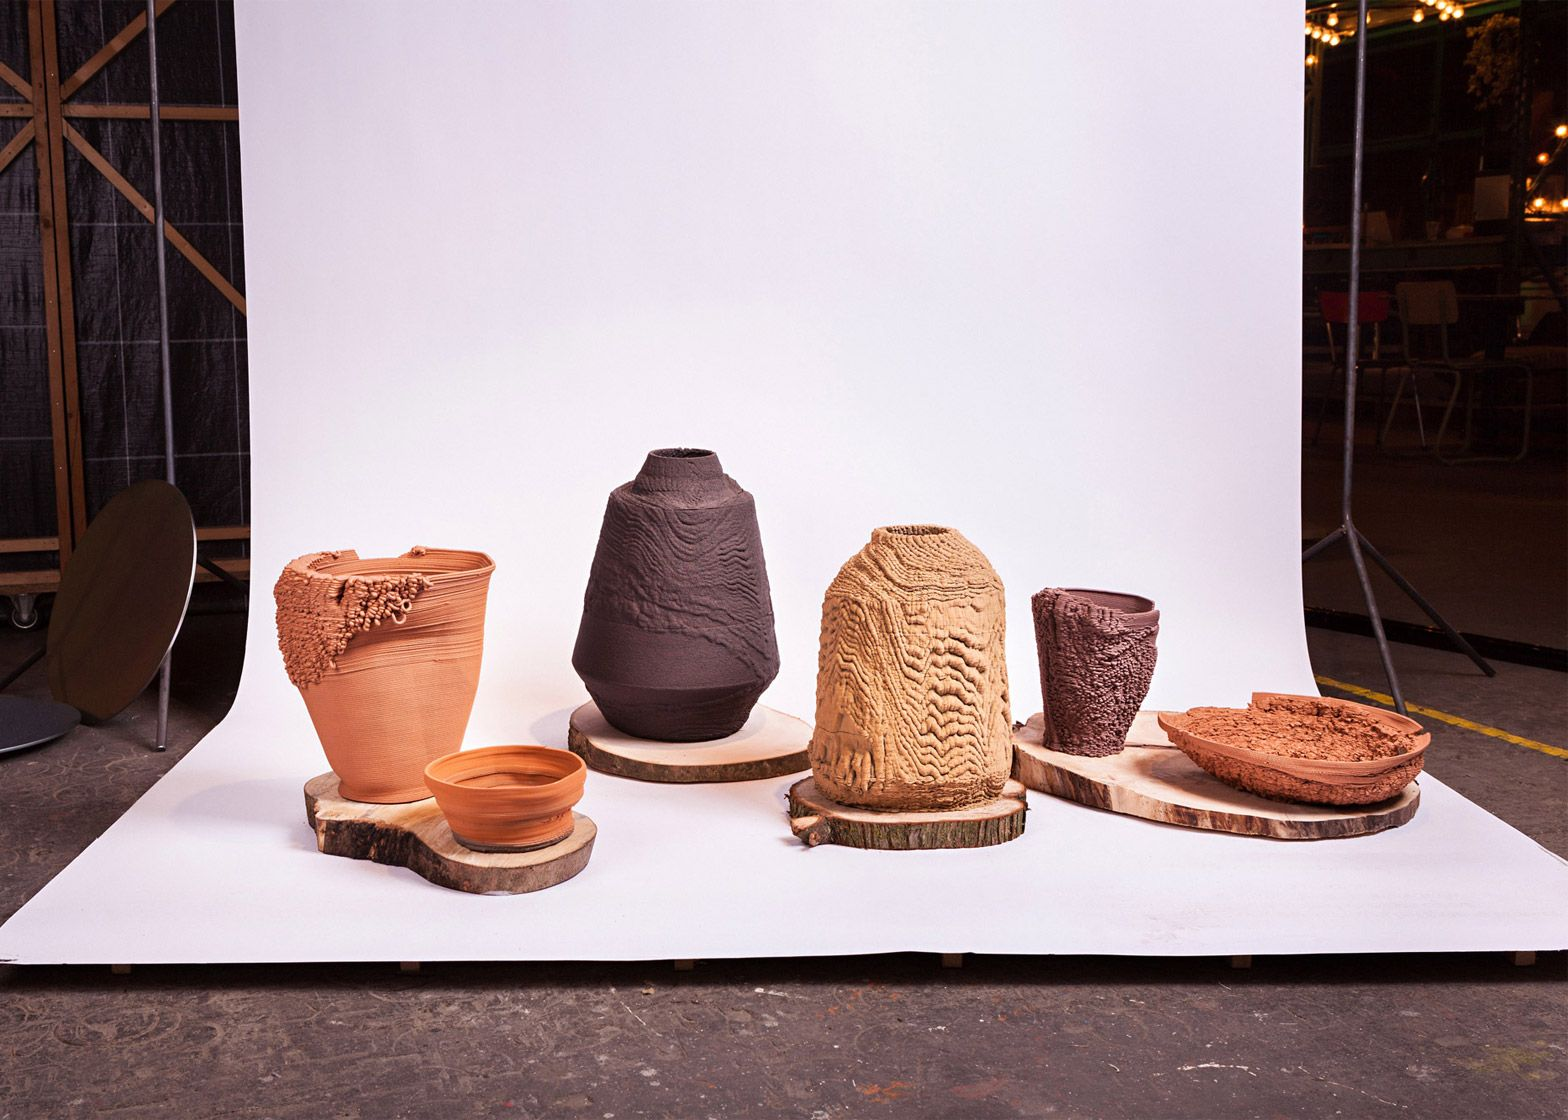 Aptive Manufacturing 2014 by Sander Wassink and Olivier van Herpt, for Van Abbemuseum's Thing Nothing exhibition.